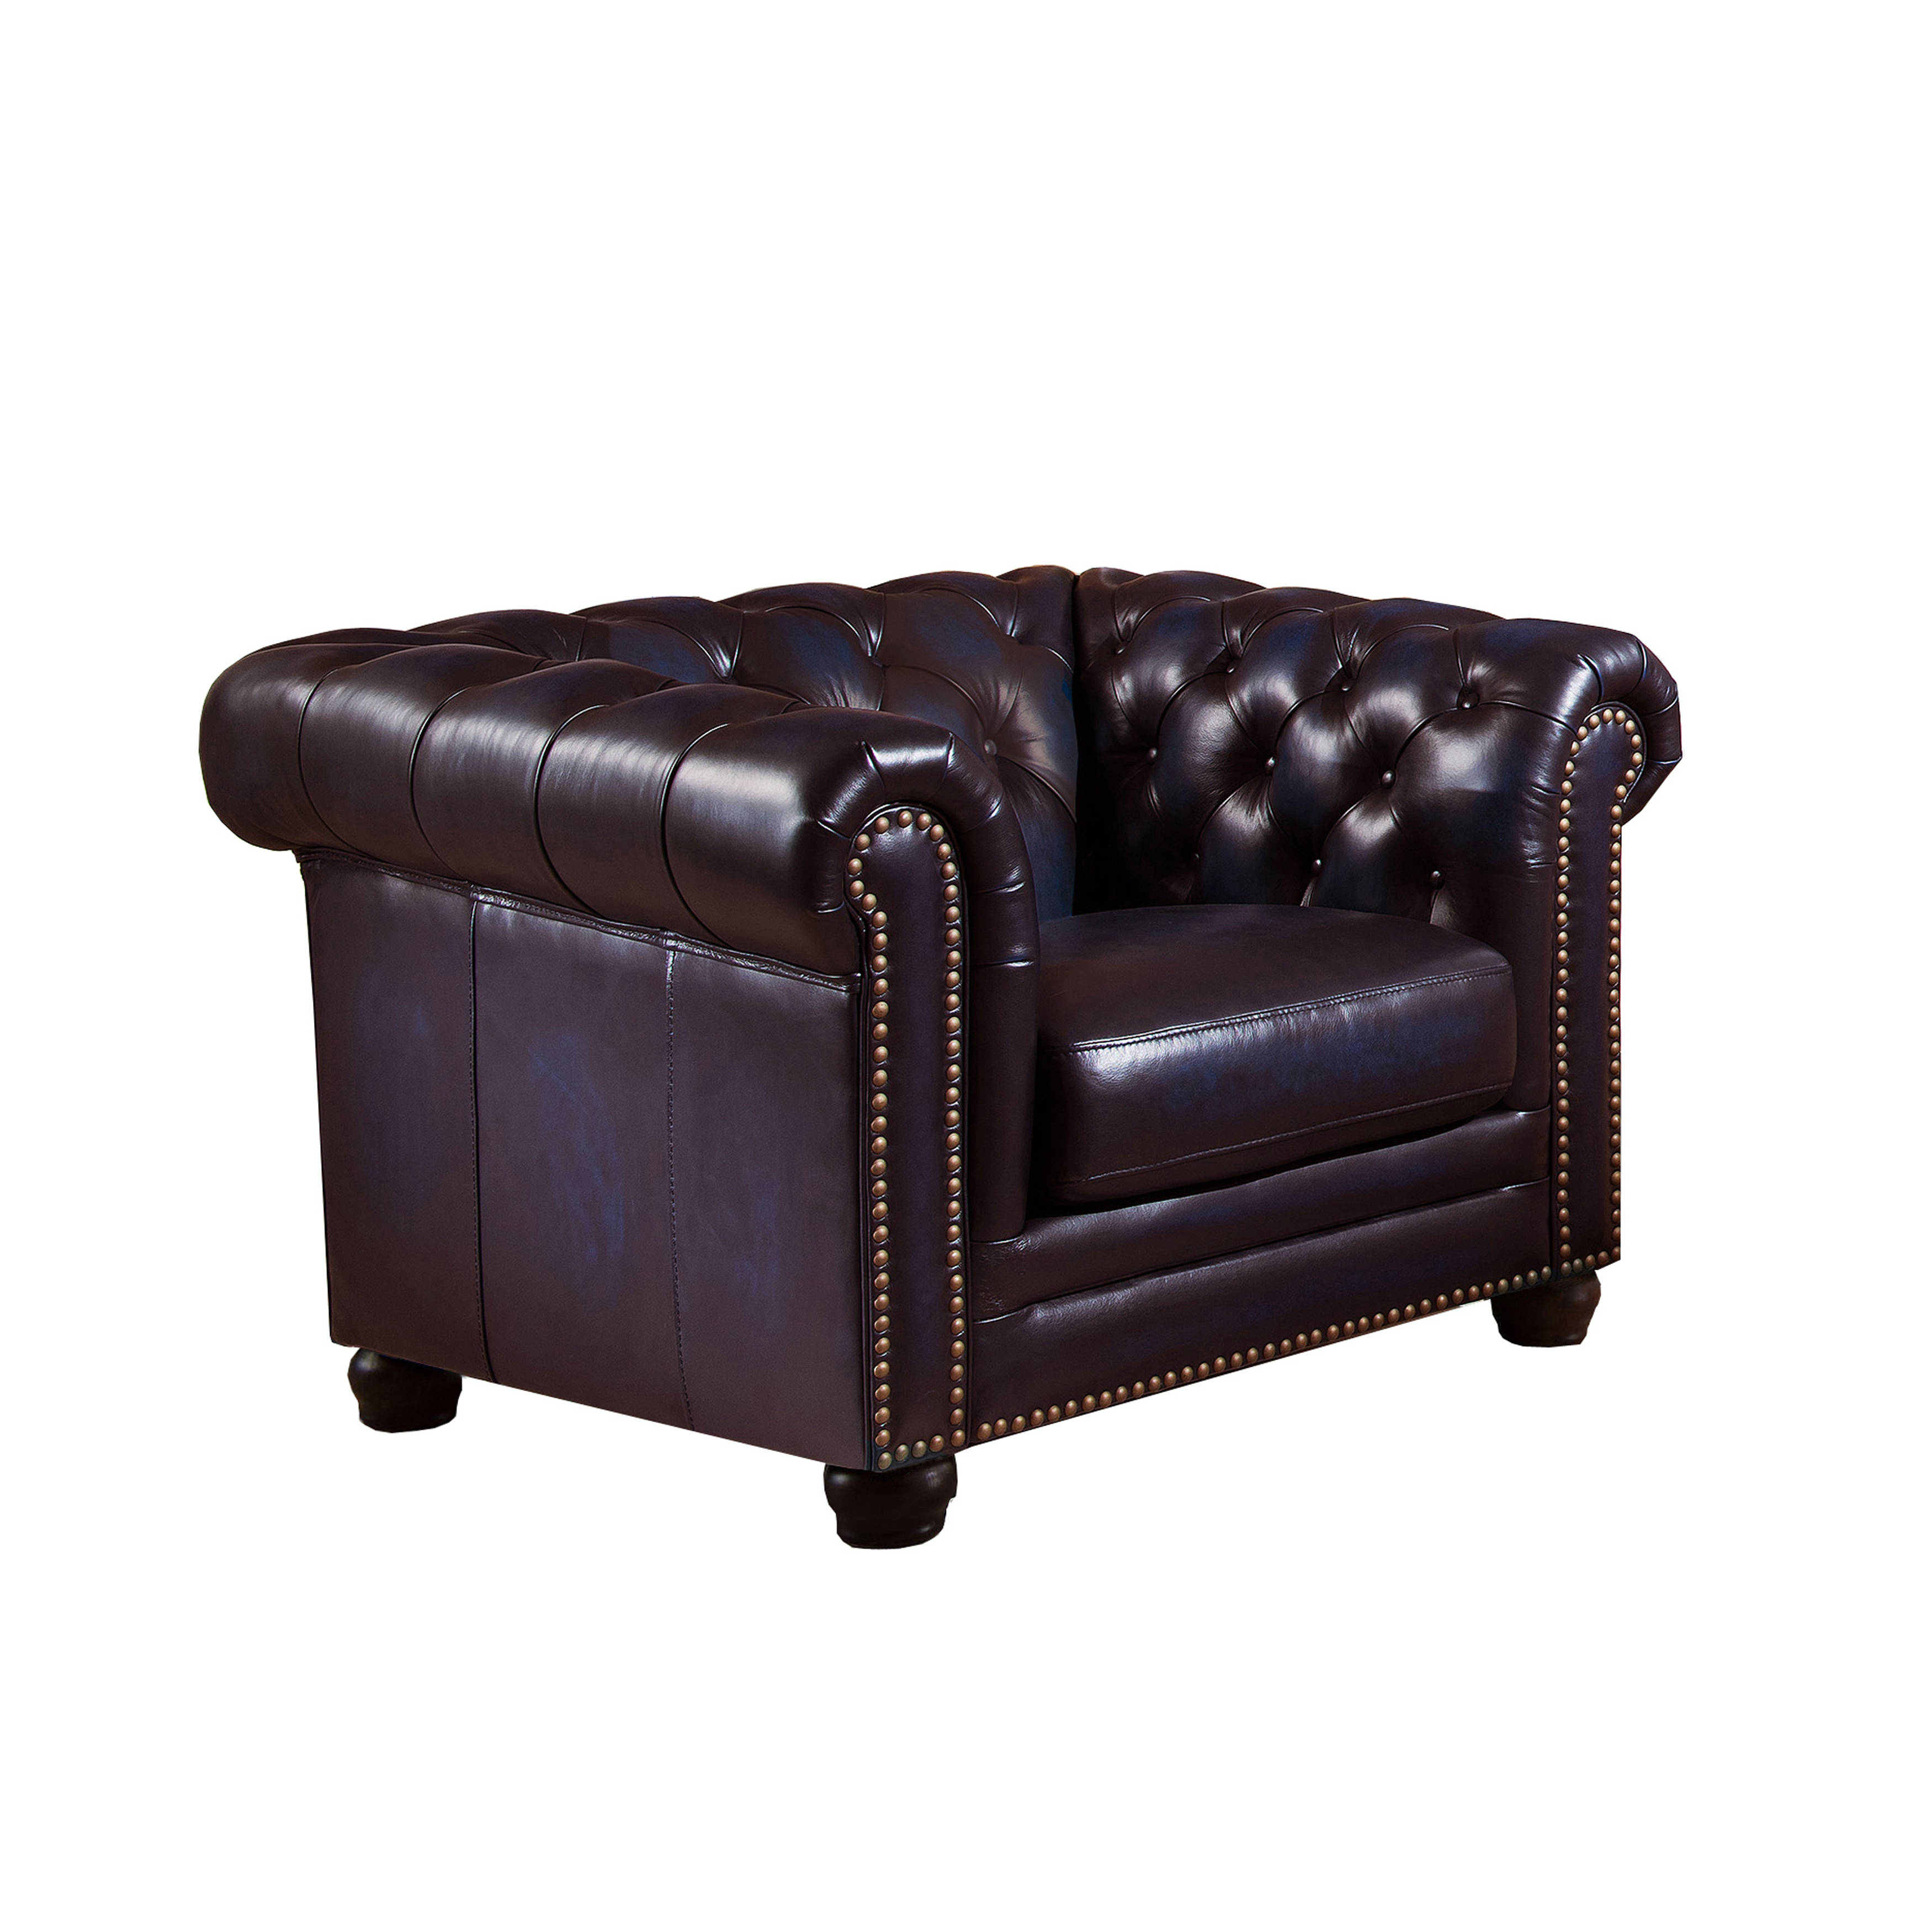 Amax leather dynasty navy blue armchair the classy home